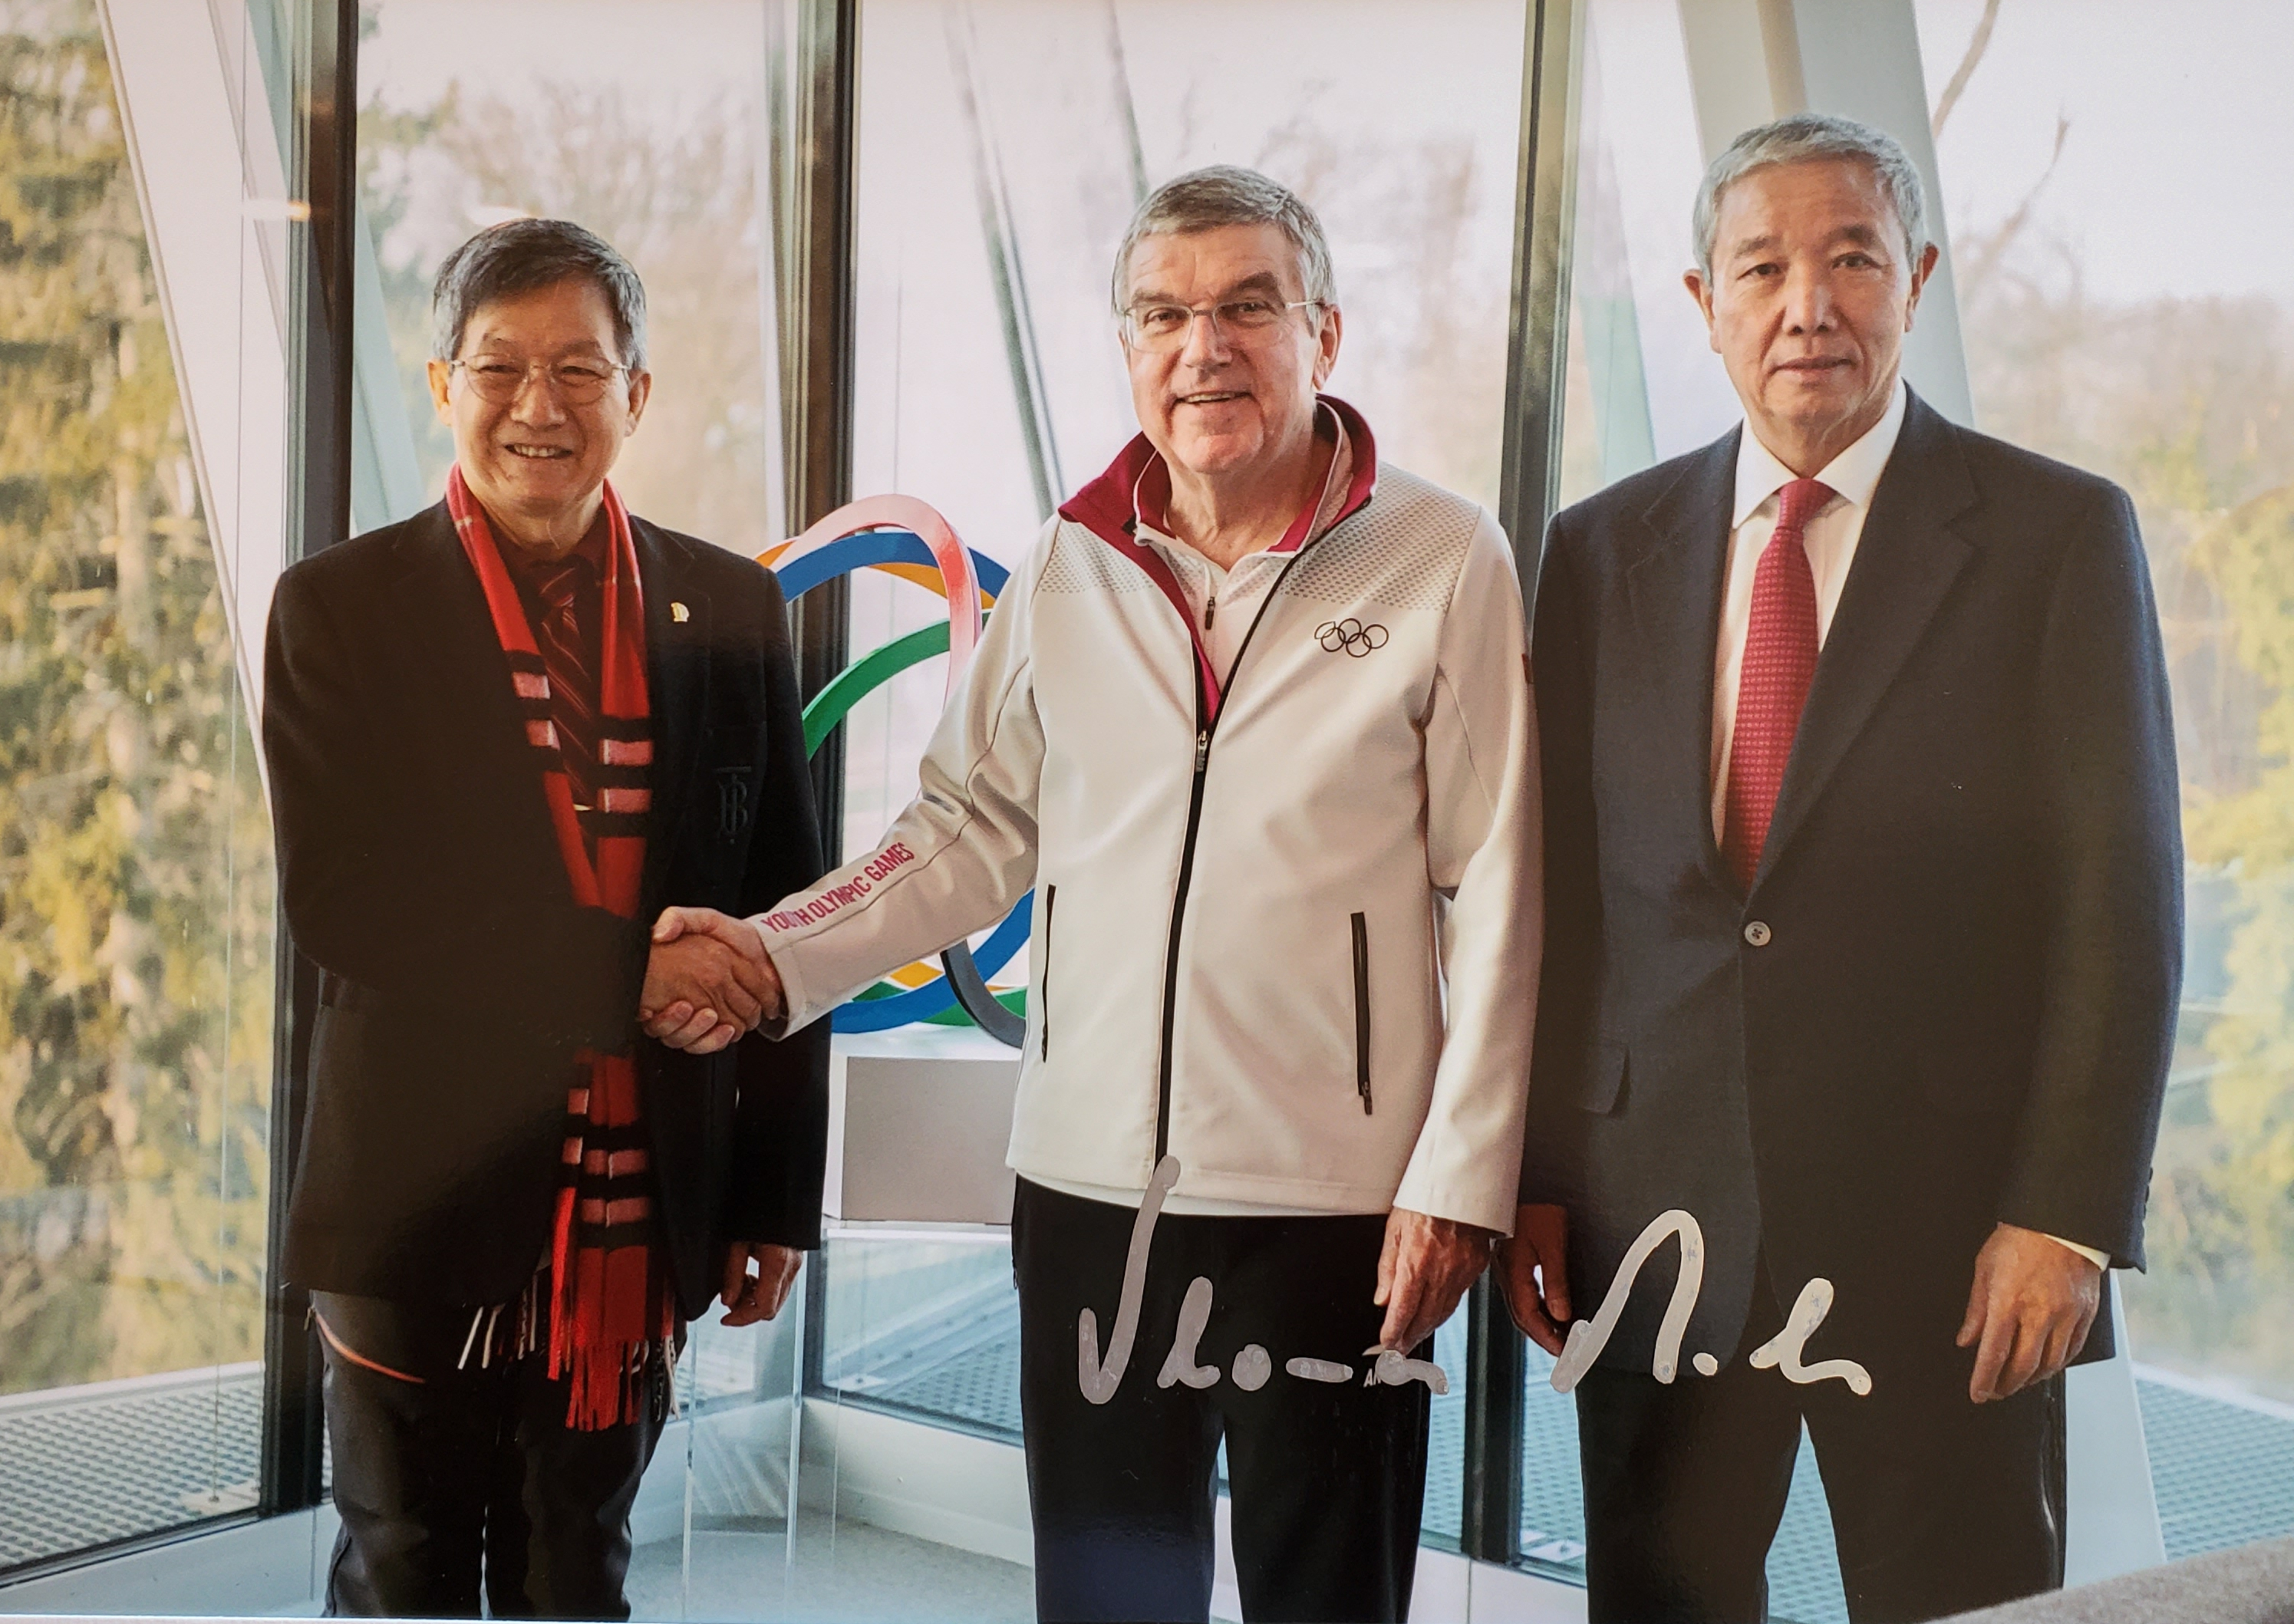 Jiannan Huang, International Olympic Committee (IOC) President Thomas Bach, and Vice Chairman Yu Zai